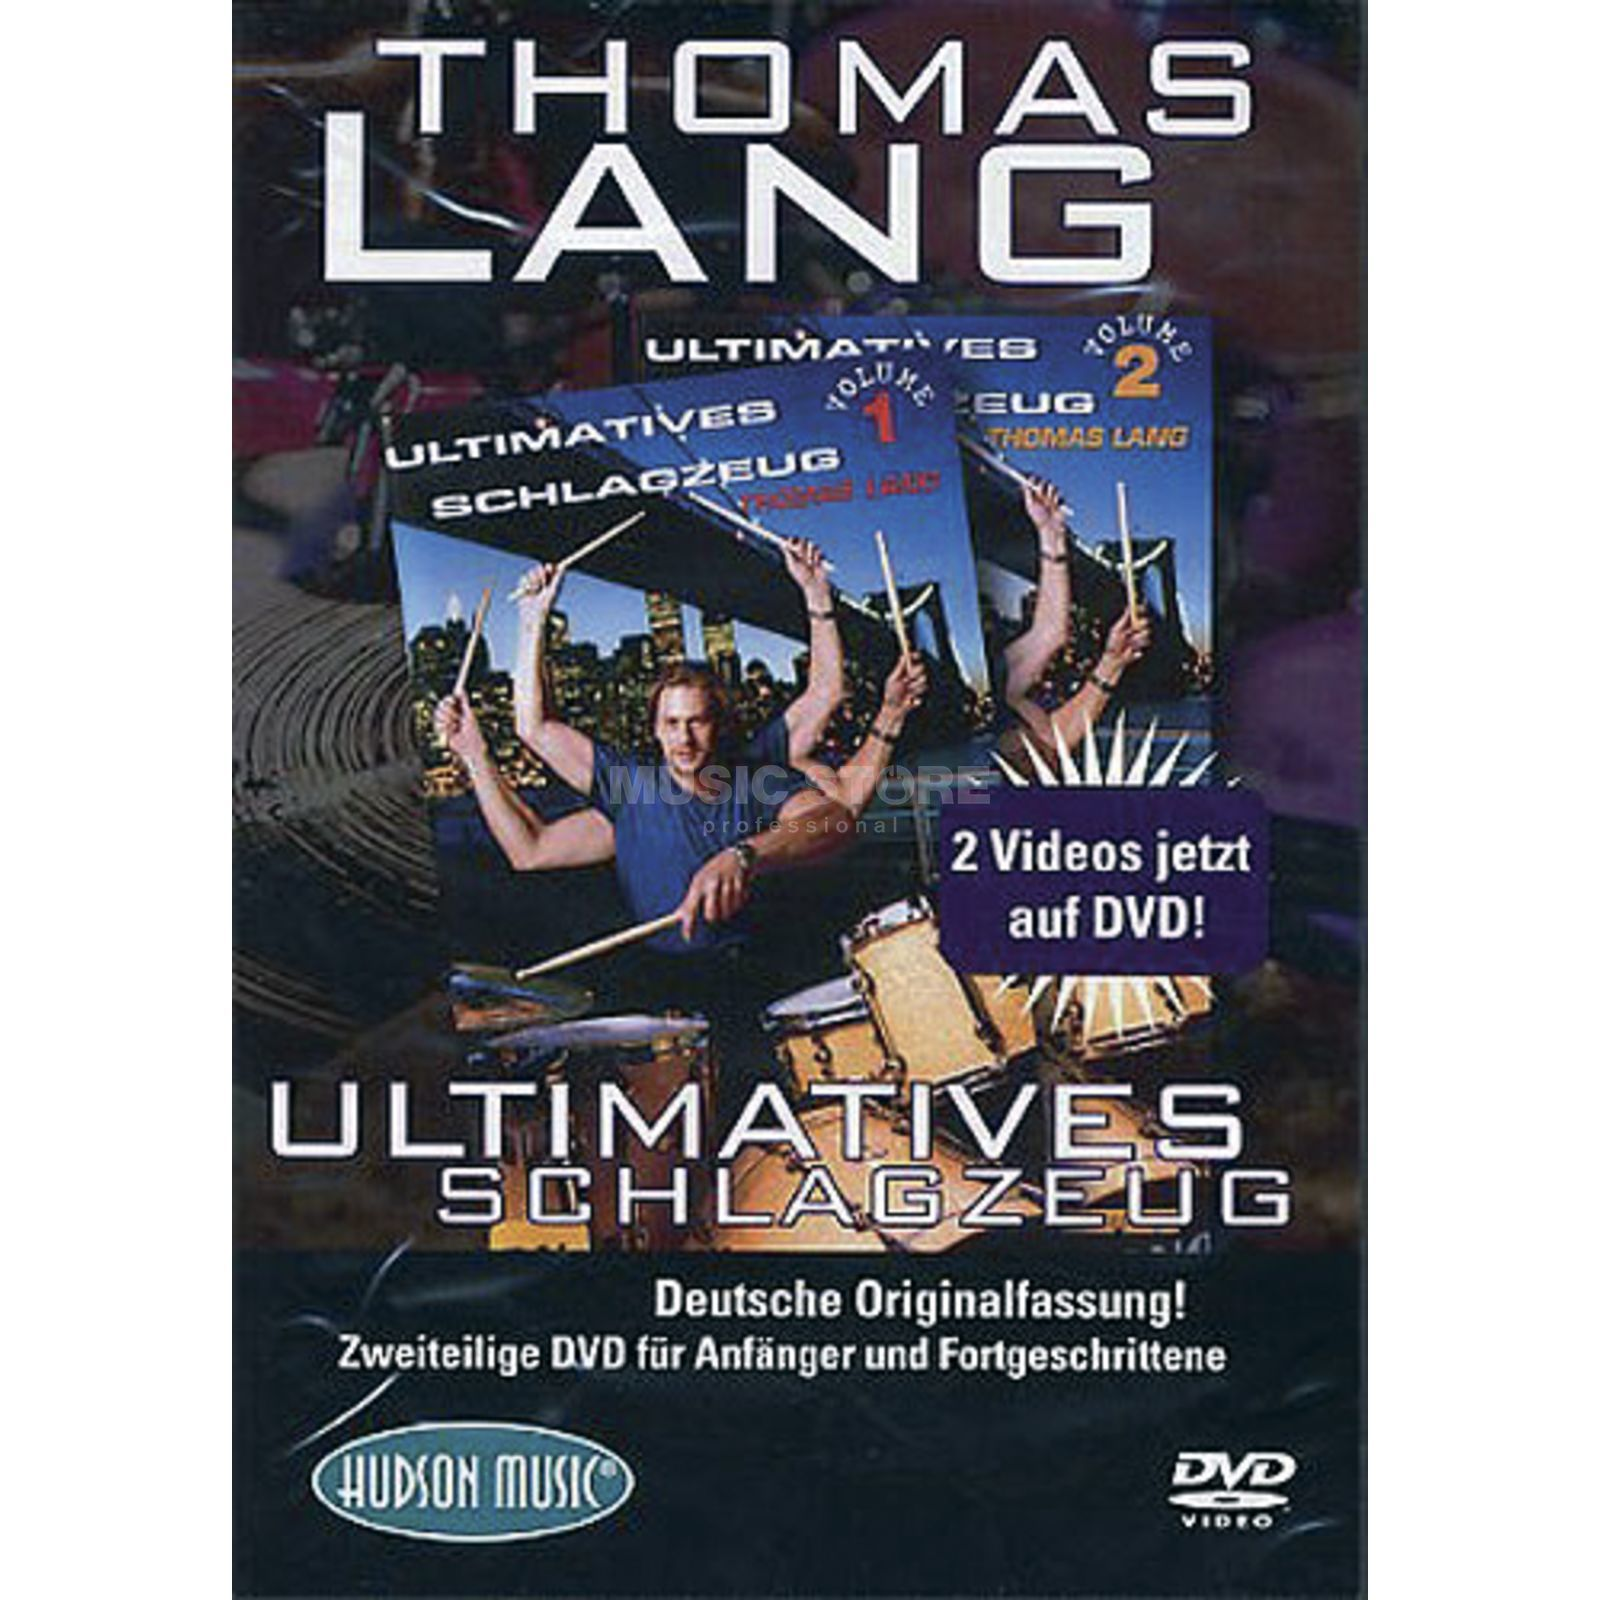 Hudson Music Lang - Ultimatives Schlagzeug DVD, DEUTSCH Produktbillede